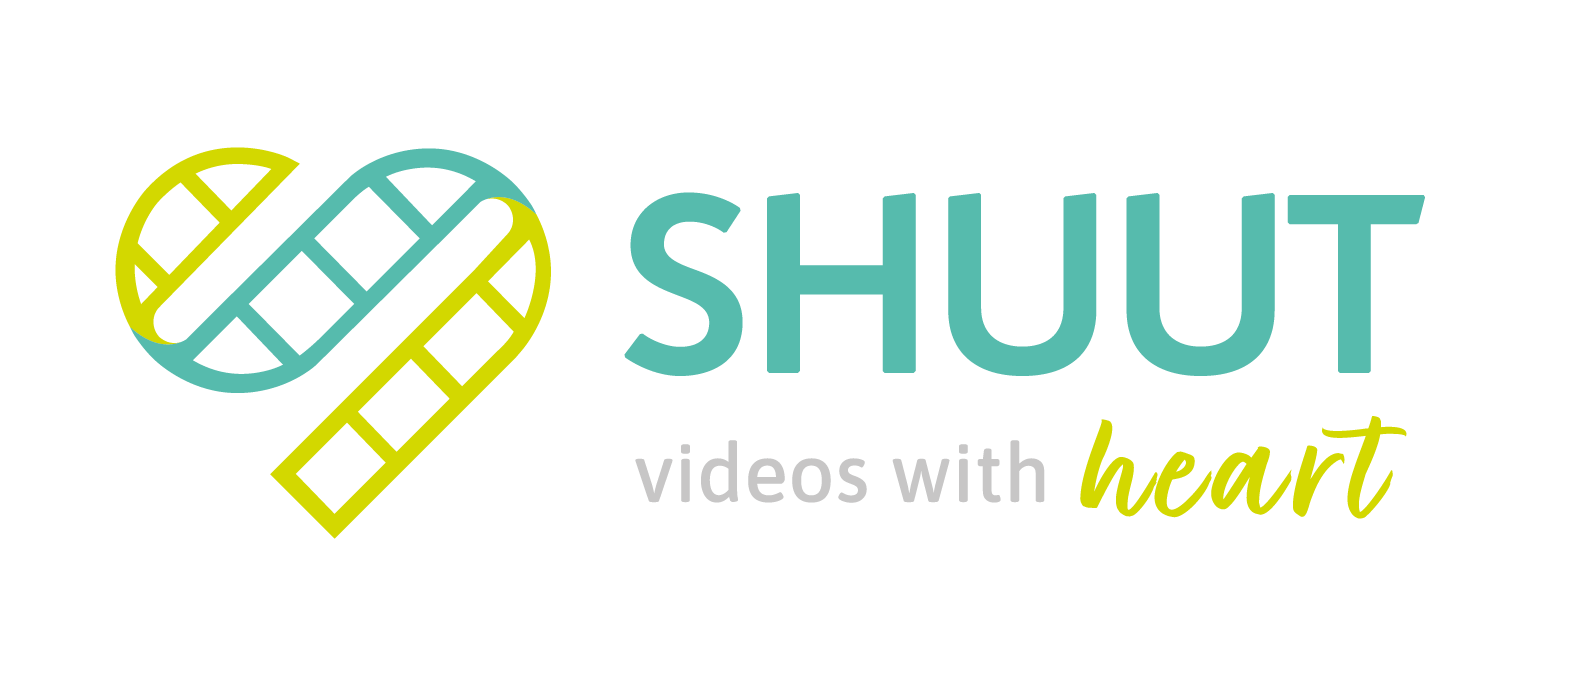 Shuut – Videos With Heart